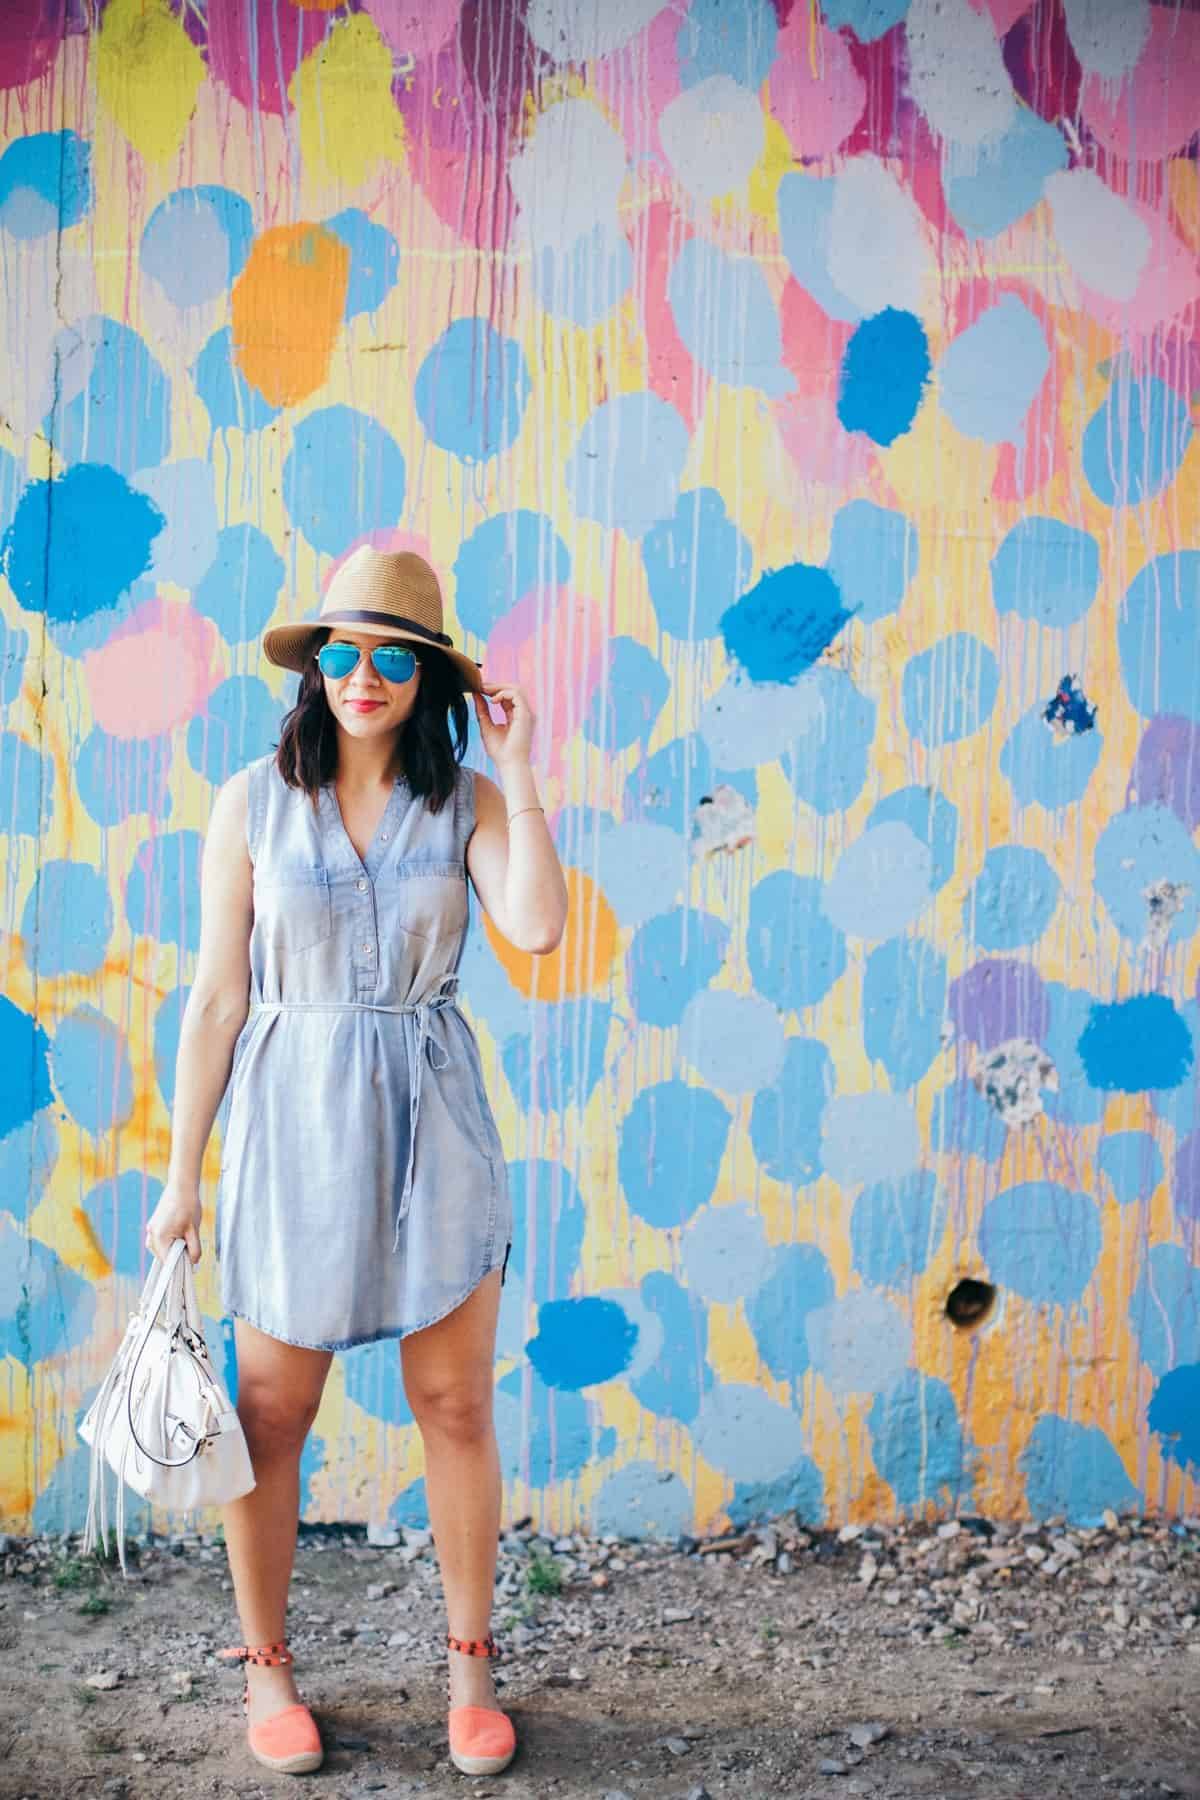 chambray shirt dress and espadrilles, best espadrilles for summer - My Style Vita - @mystylevita - 9